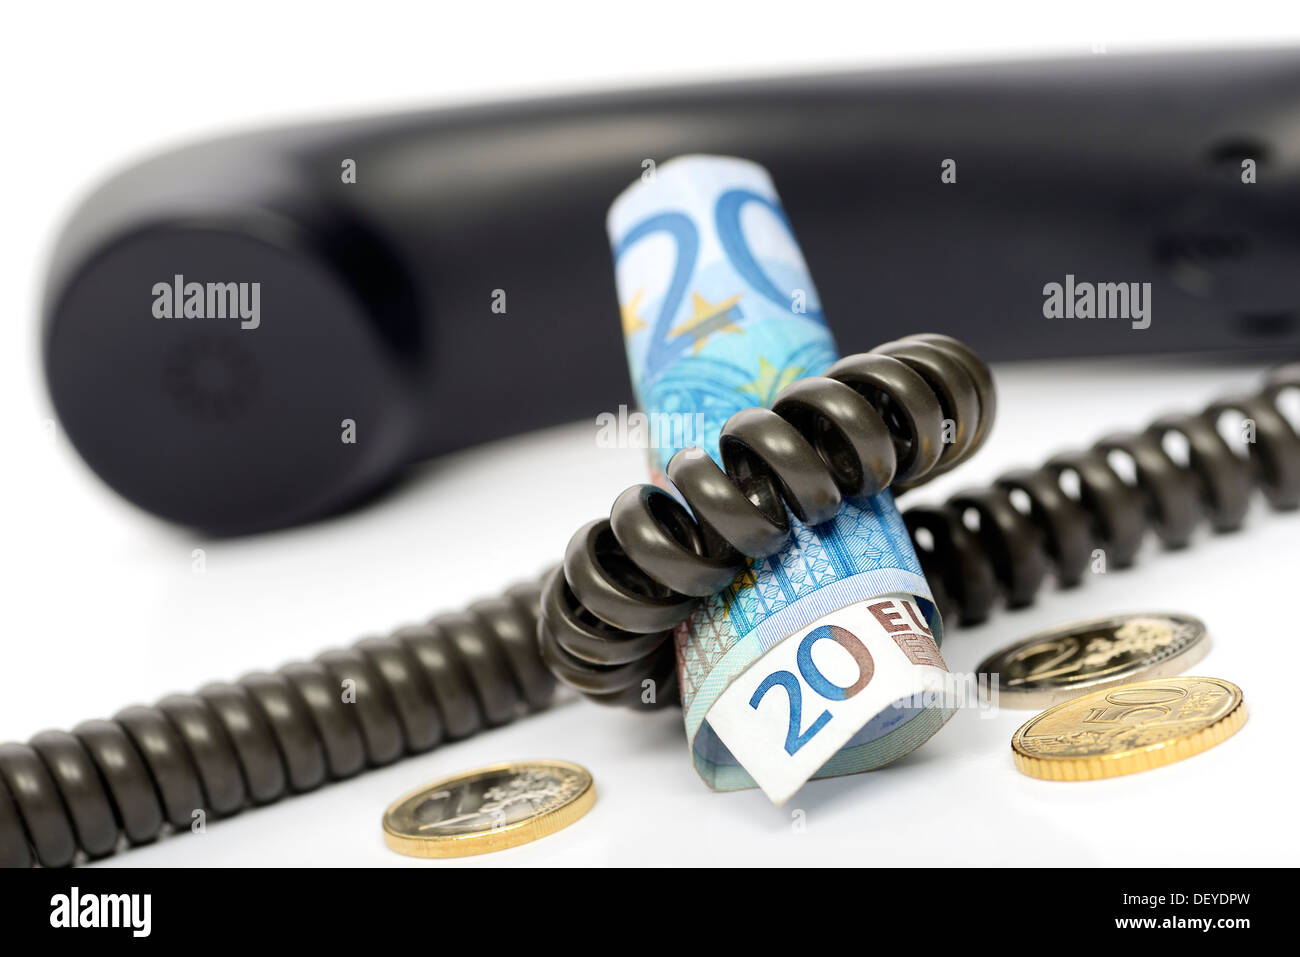 Phone with bank note and monetary coins, symbolic photo waiting loop liable for costs, Telefon mit Geldschein und Stock Photo